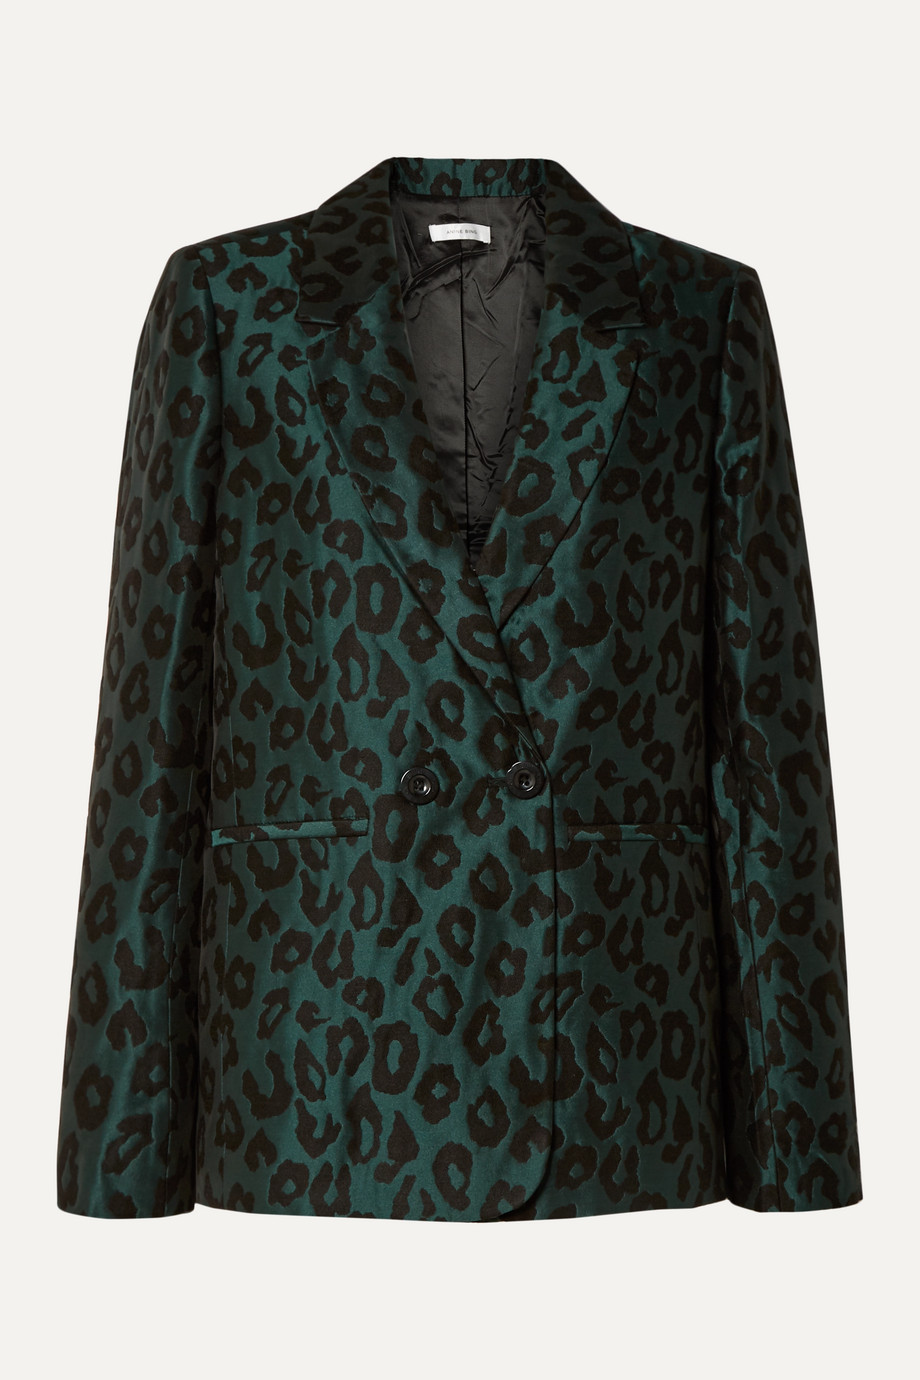 Anine Bing Madeleine double-breasted leopard-jacquard blazer